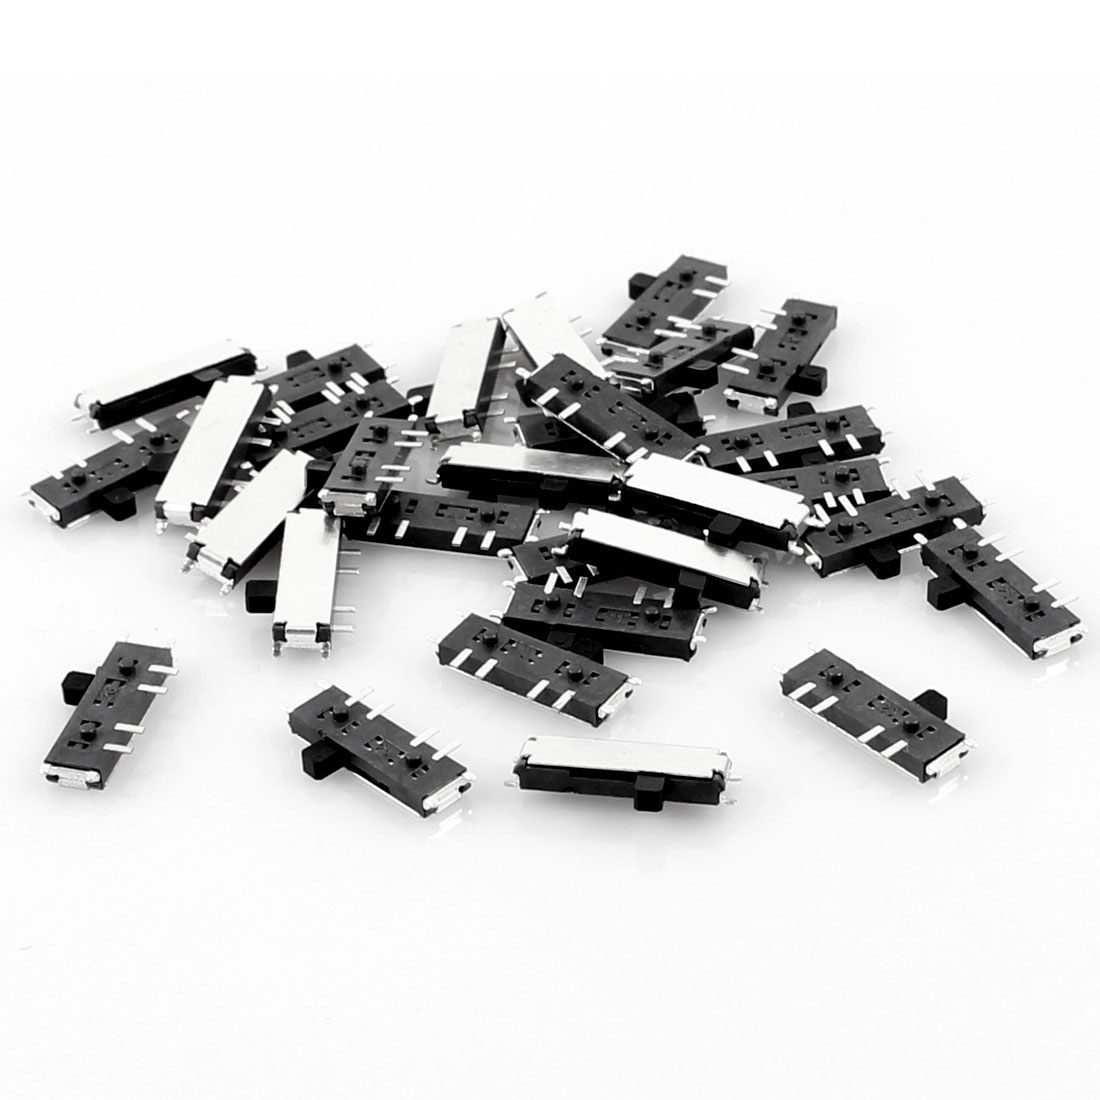 30 Pcs On/Off/On 8 Pin 2P2T DPDT Miniature SMD SMT Slide Switch 10mm x 3mm